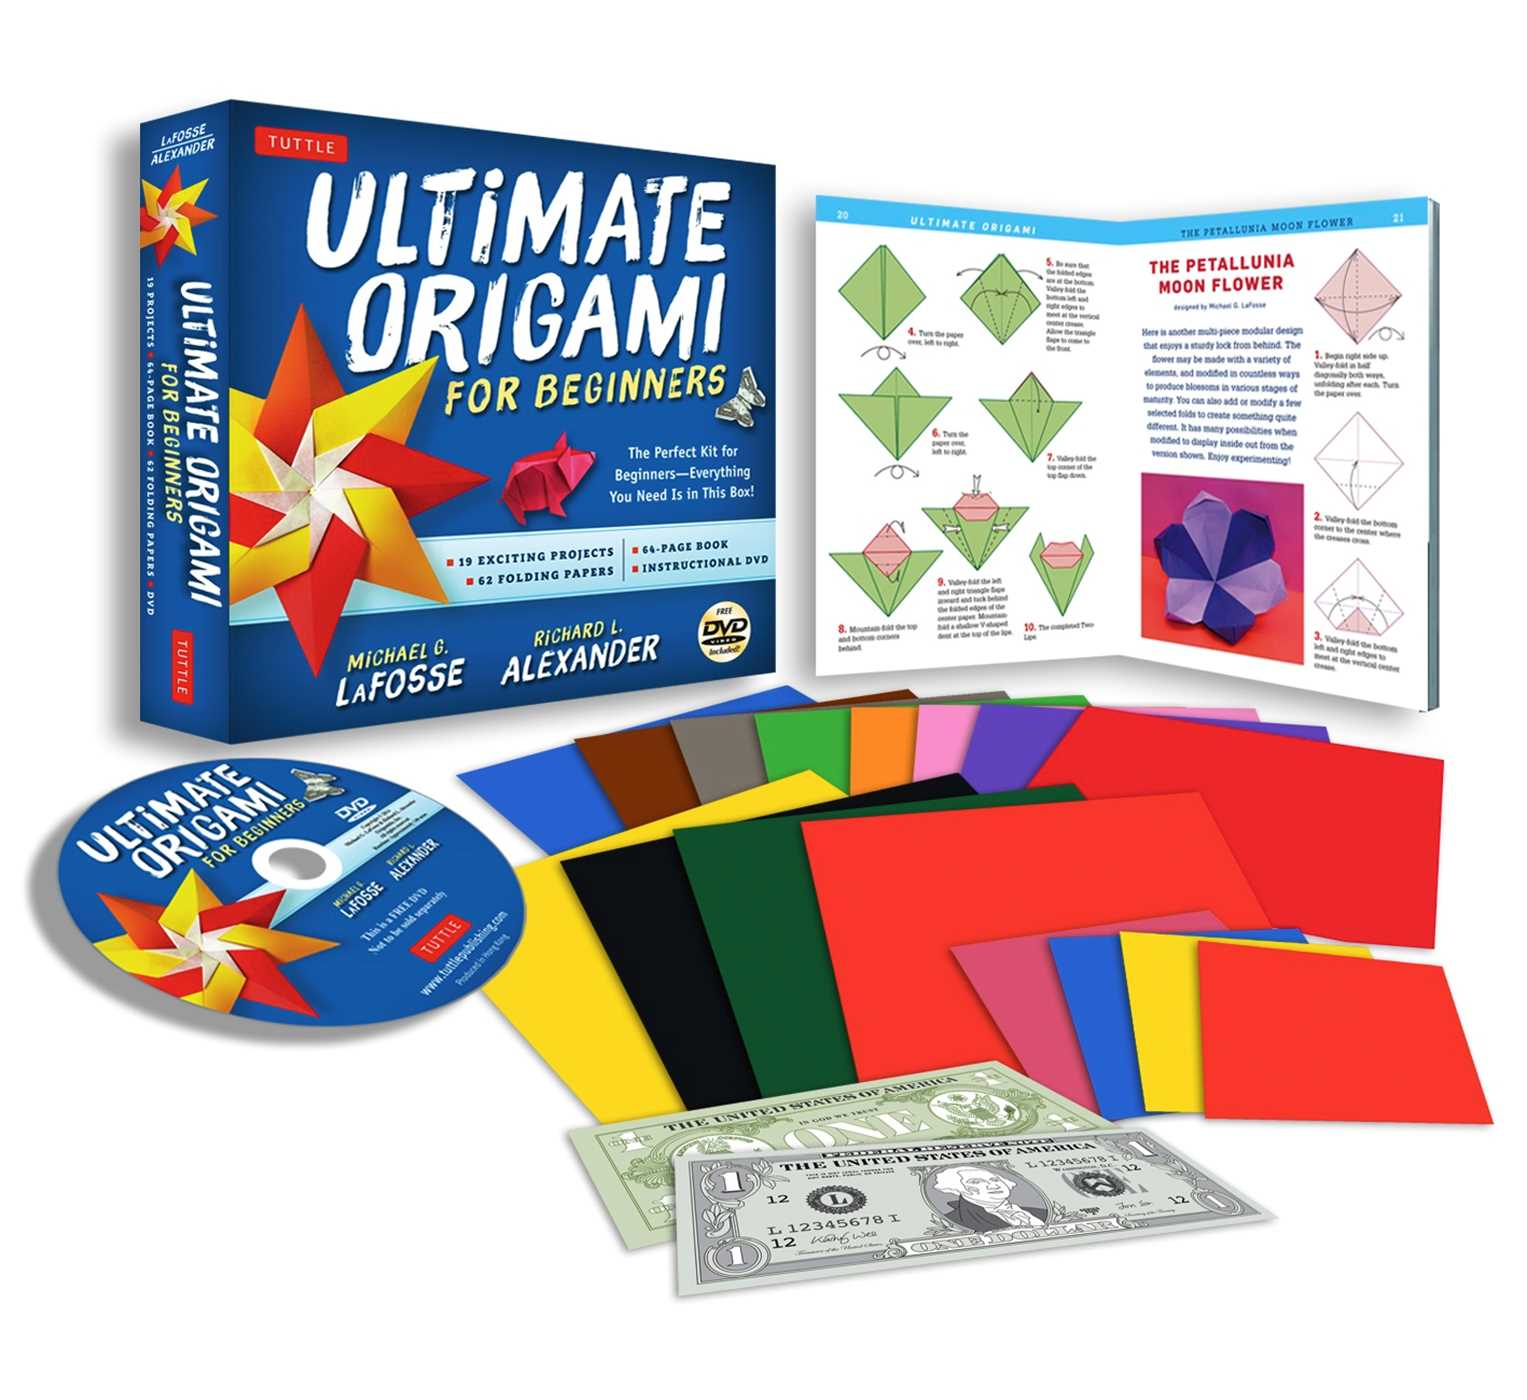 Ultimate Origami for Beginners Kit : The Perfect Kit for Beginners-Everything you Need is in This Box!: Kit Includes Origami Book, 19 Projects, 62 Origami Papers & DVD